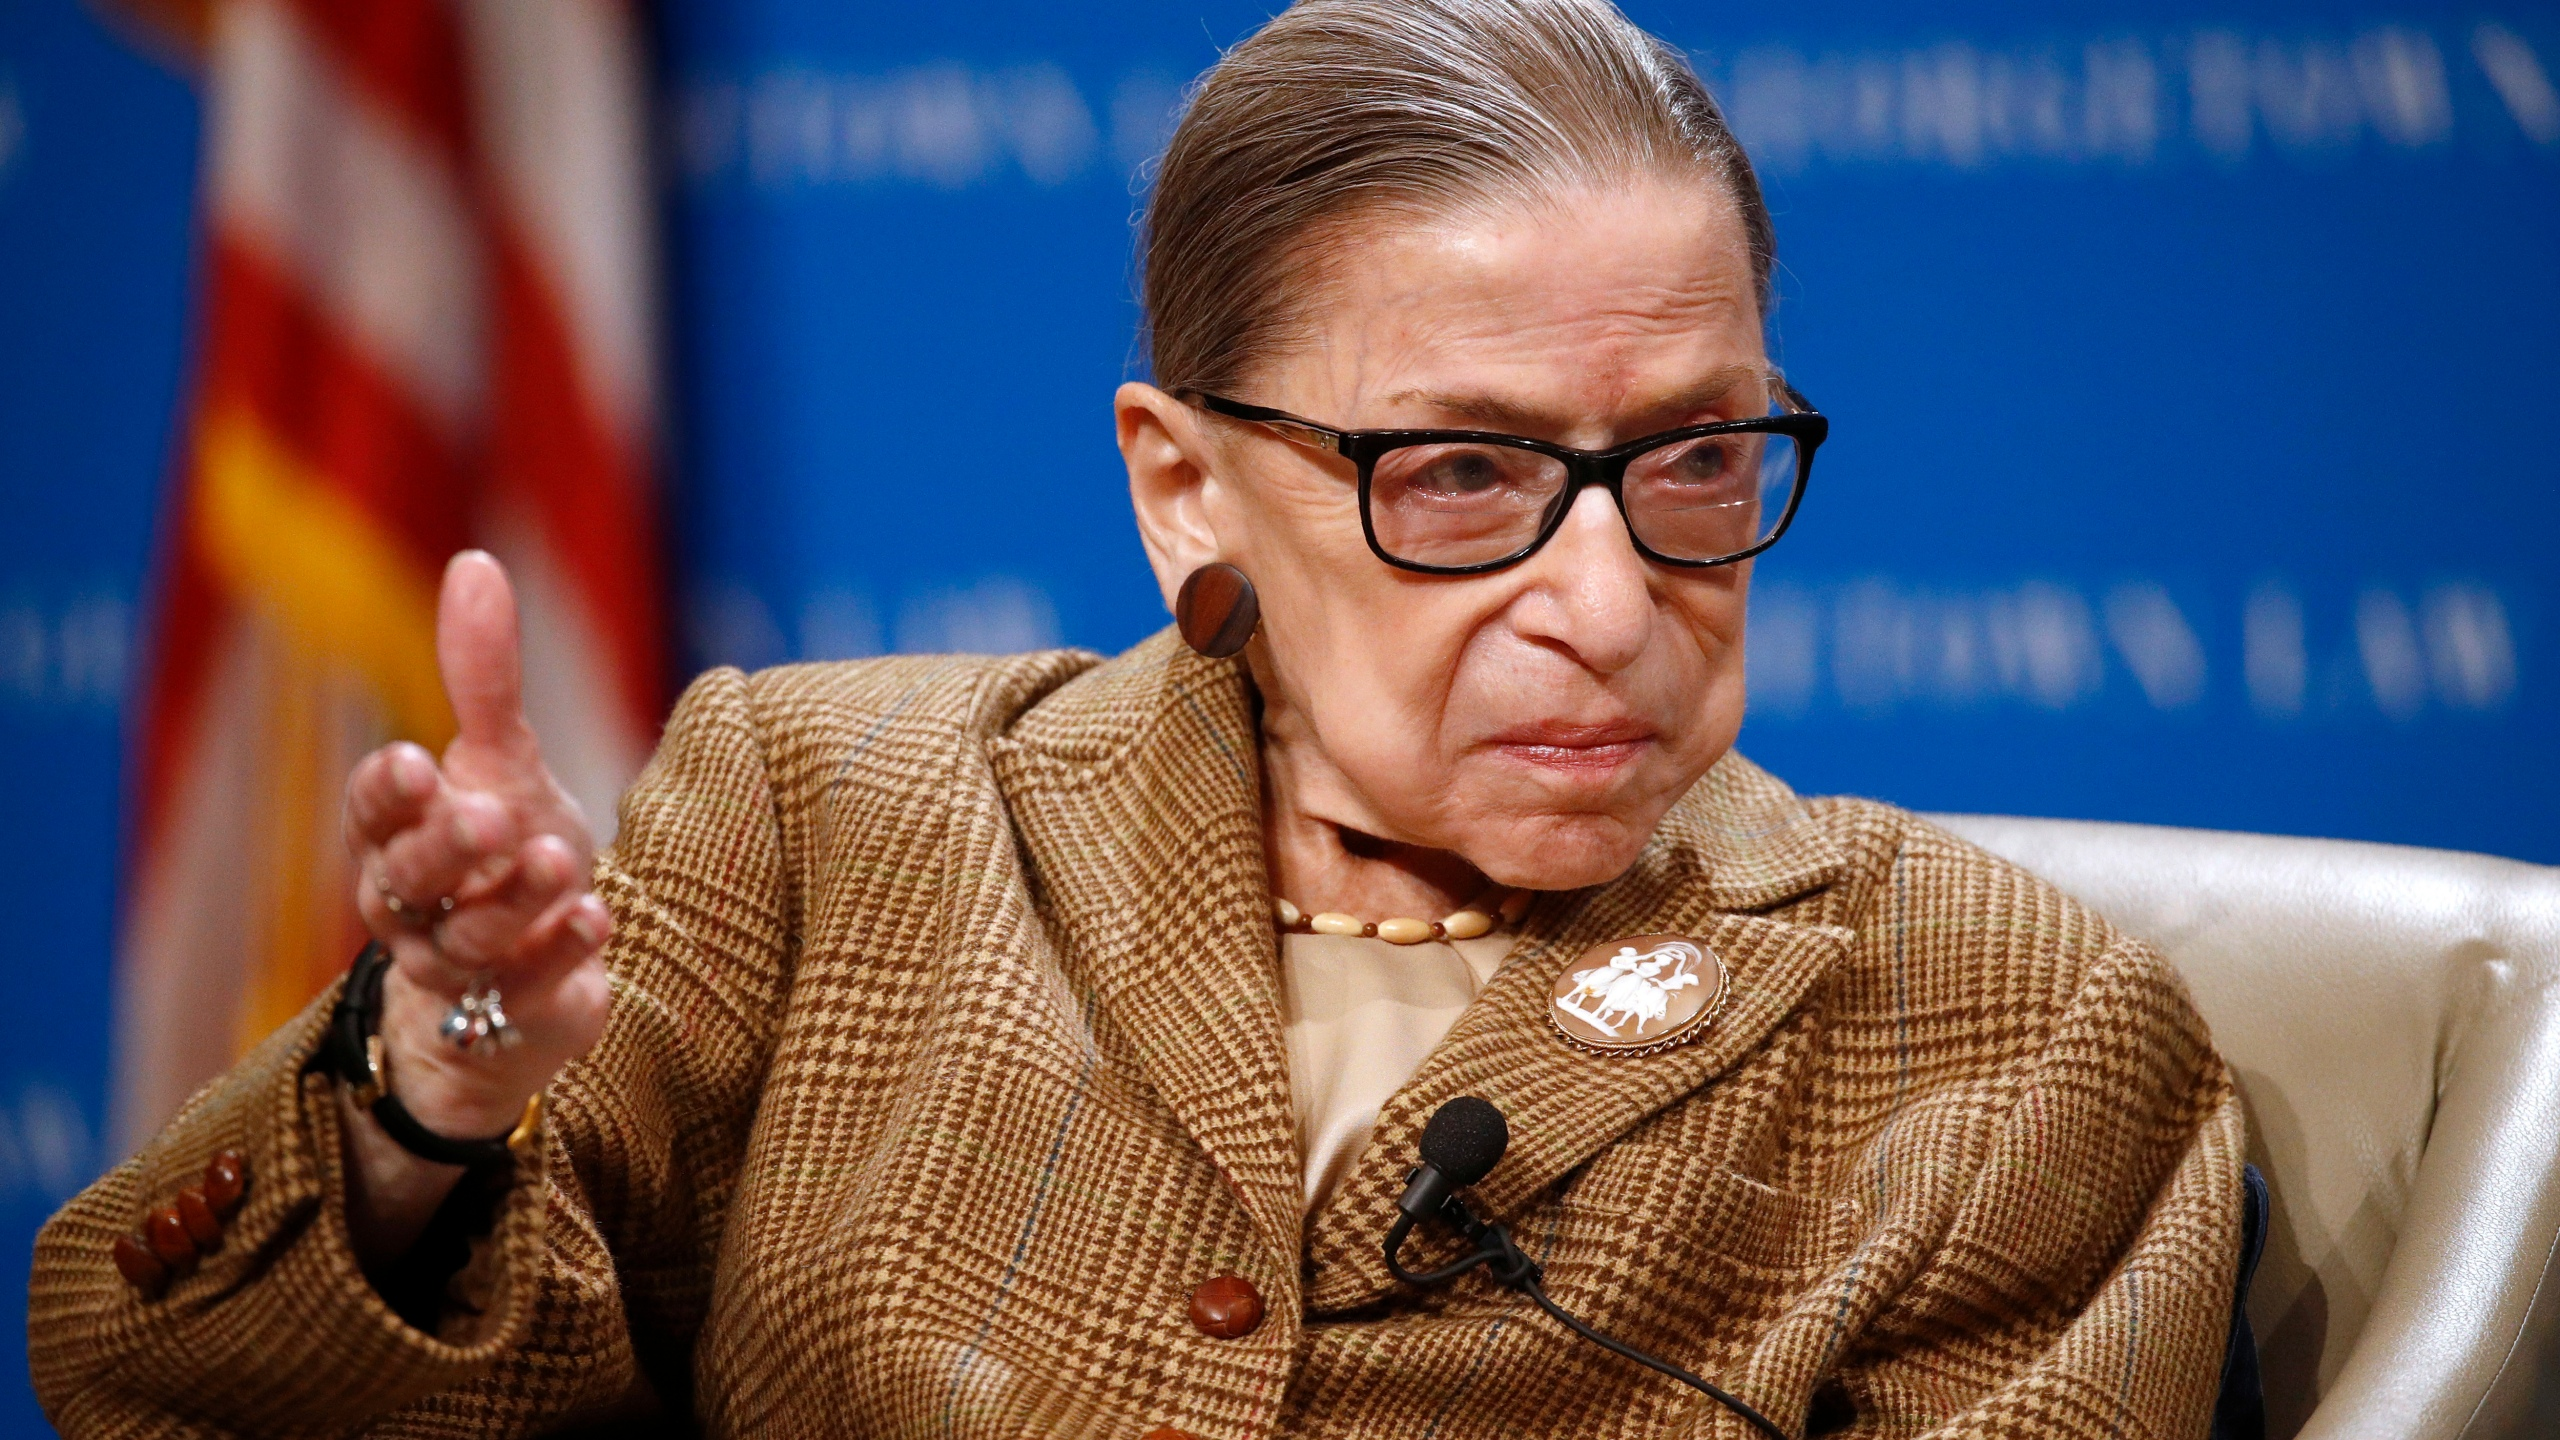 In this Feb. 10, 2020, file photo U.S. Supreme Court Associate Justice Ruth Bader Ginsburg speaks during a discussion on the 100th anniversary of the ratification of the 19th Amendment at Georgetown University Law Center in Washington. (Patrick Semansky / Associated Press)